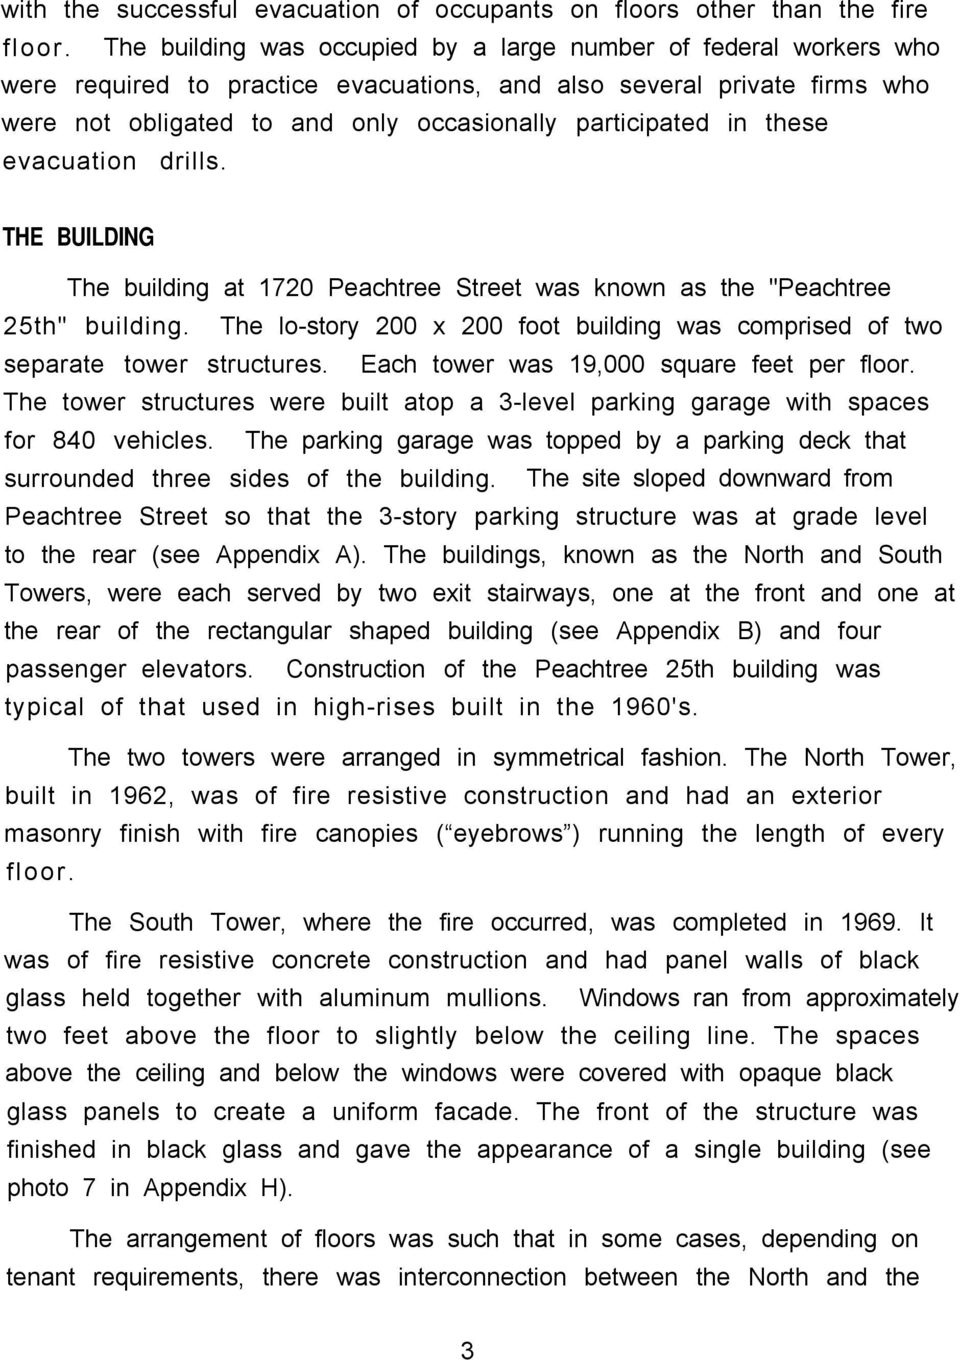 "in these evacuation drills. THE BUILDING The building at 1720 Peachtree Street was known as the ""Peachtree 25th"" building."